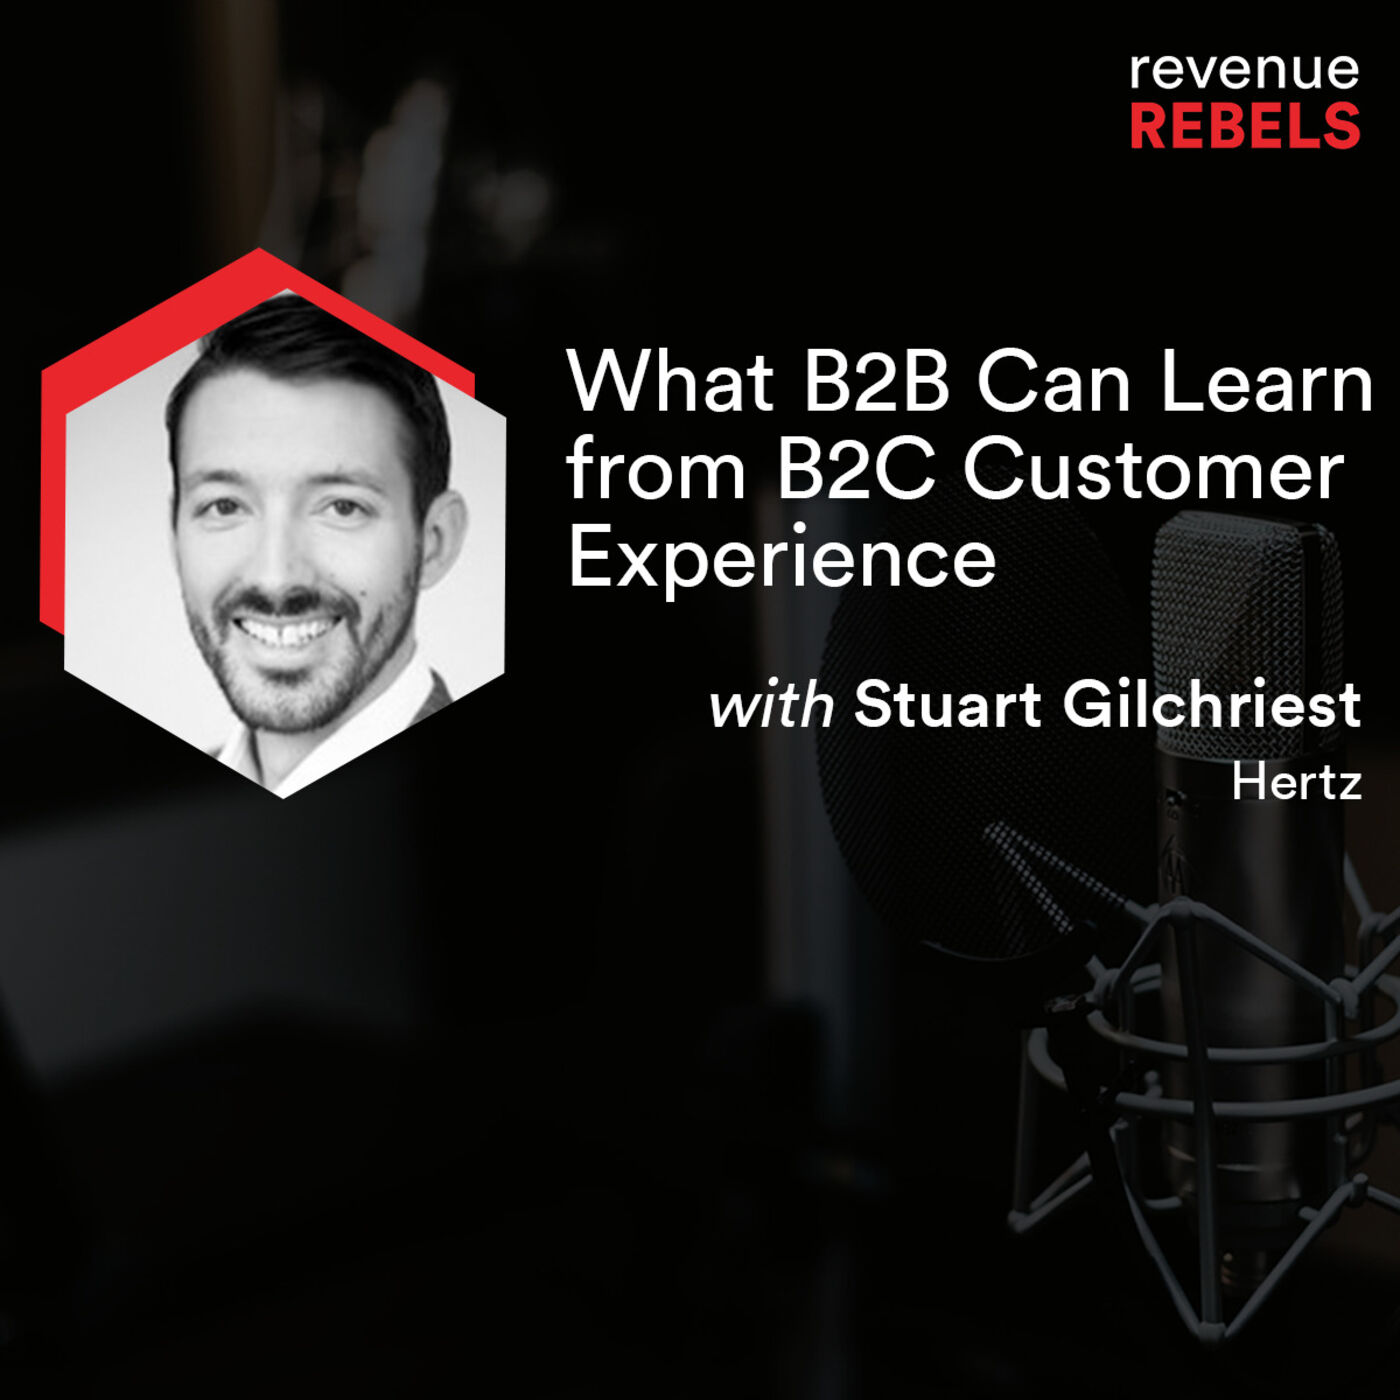 What B2B Can Learn from B2C Customer Experience